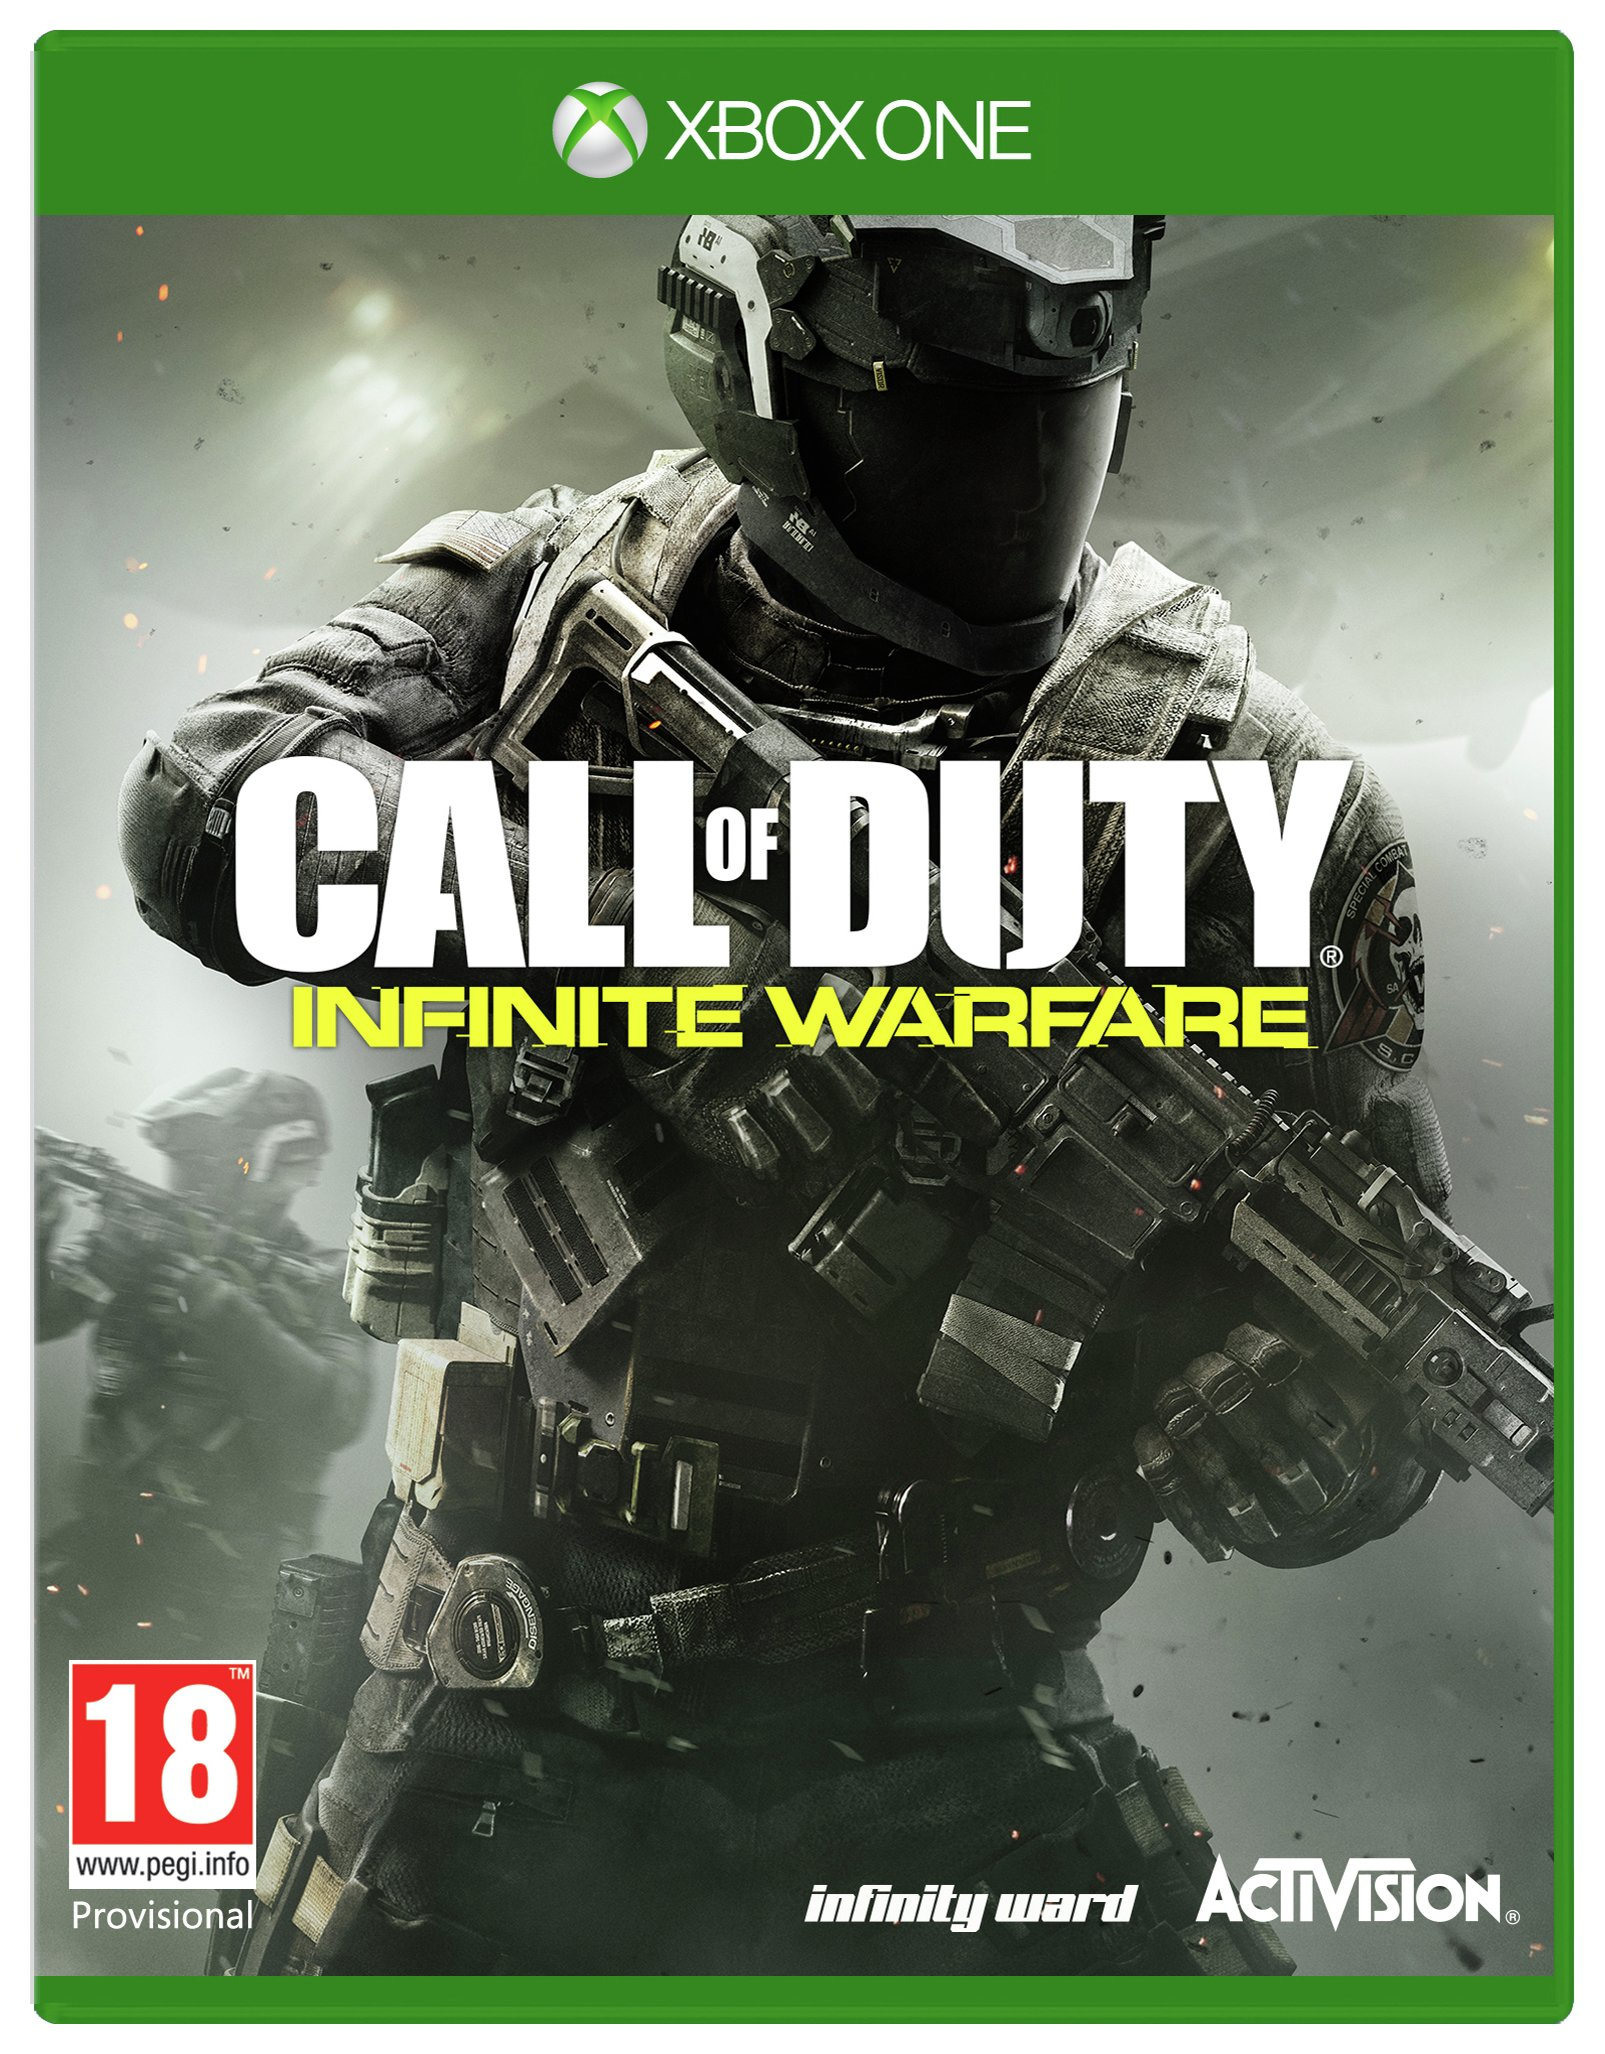 Image of Call of Duty: Infinite Warfare Xbox One Game.